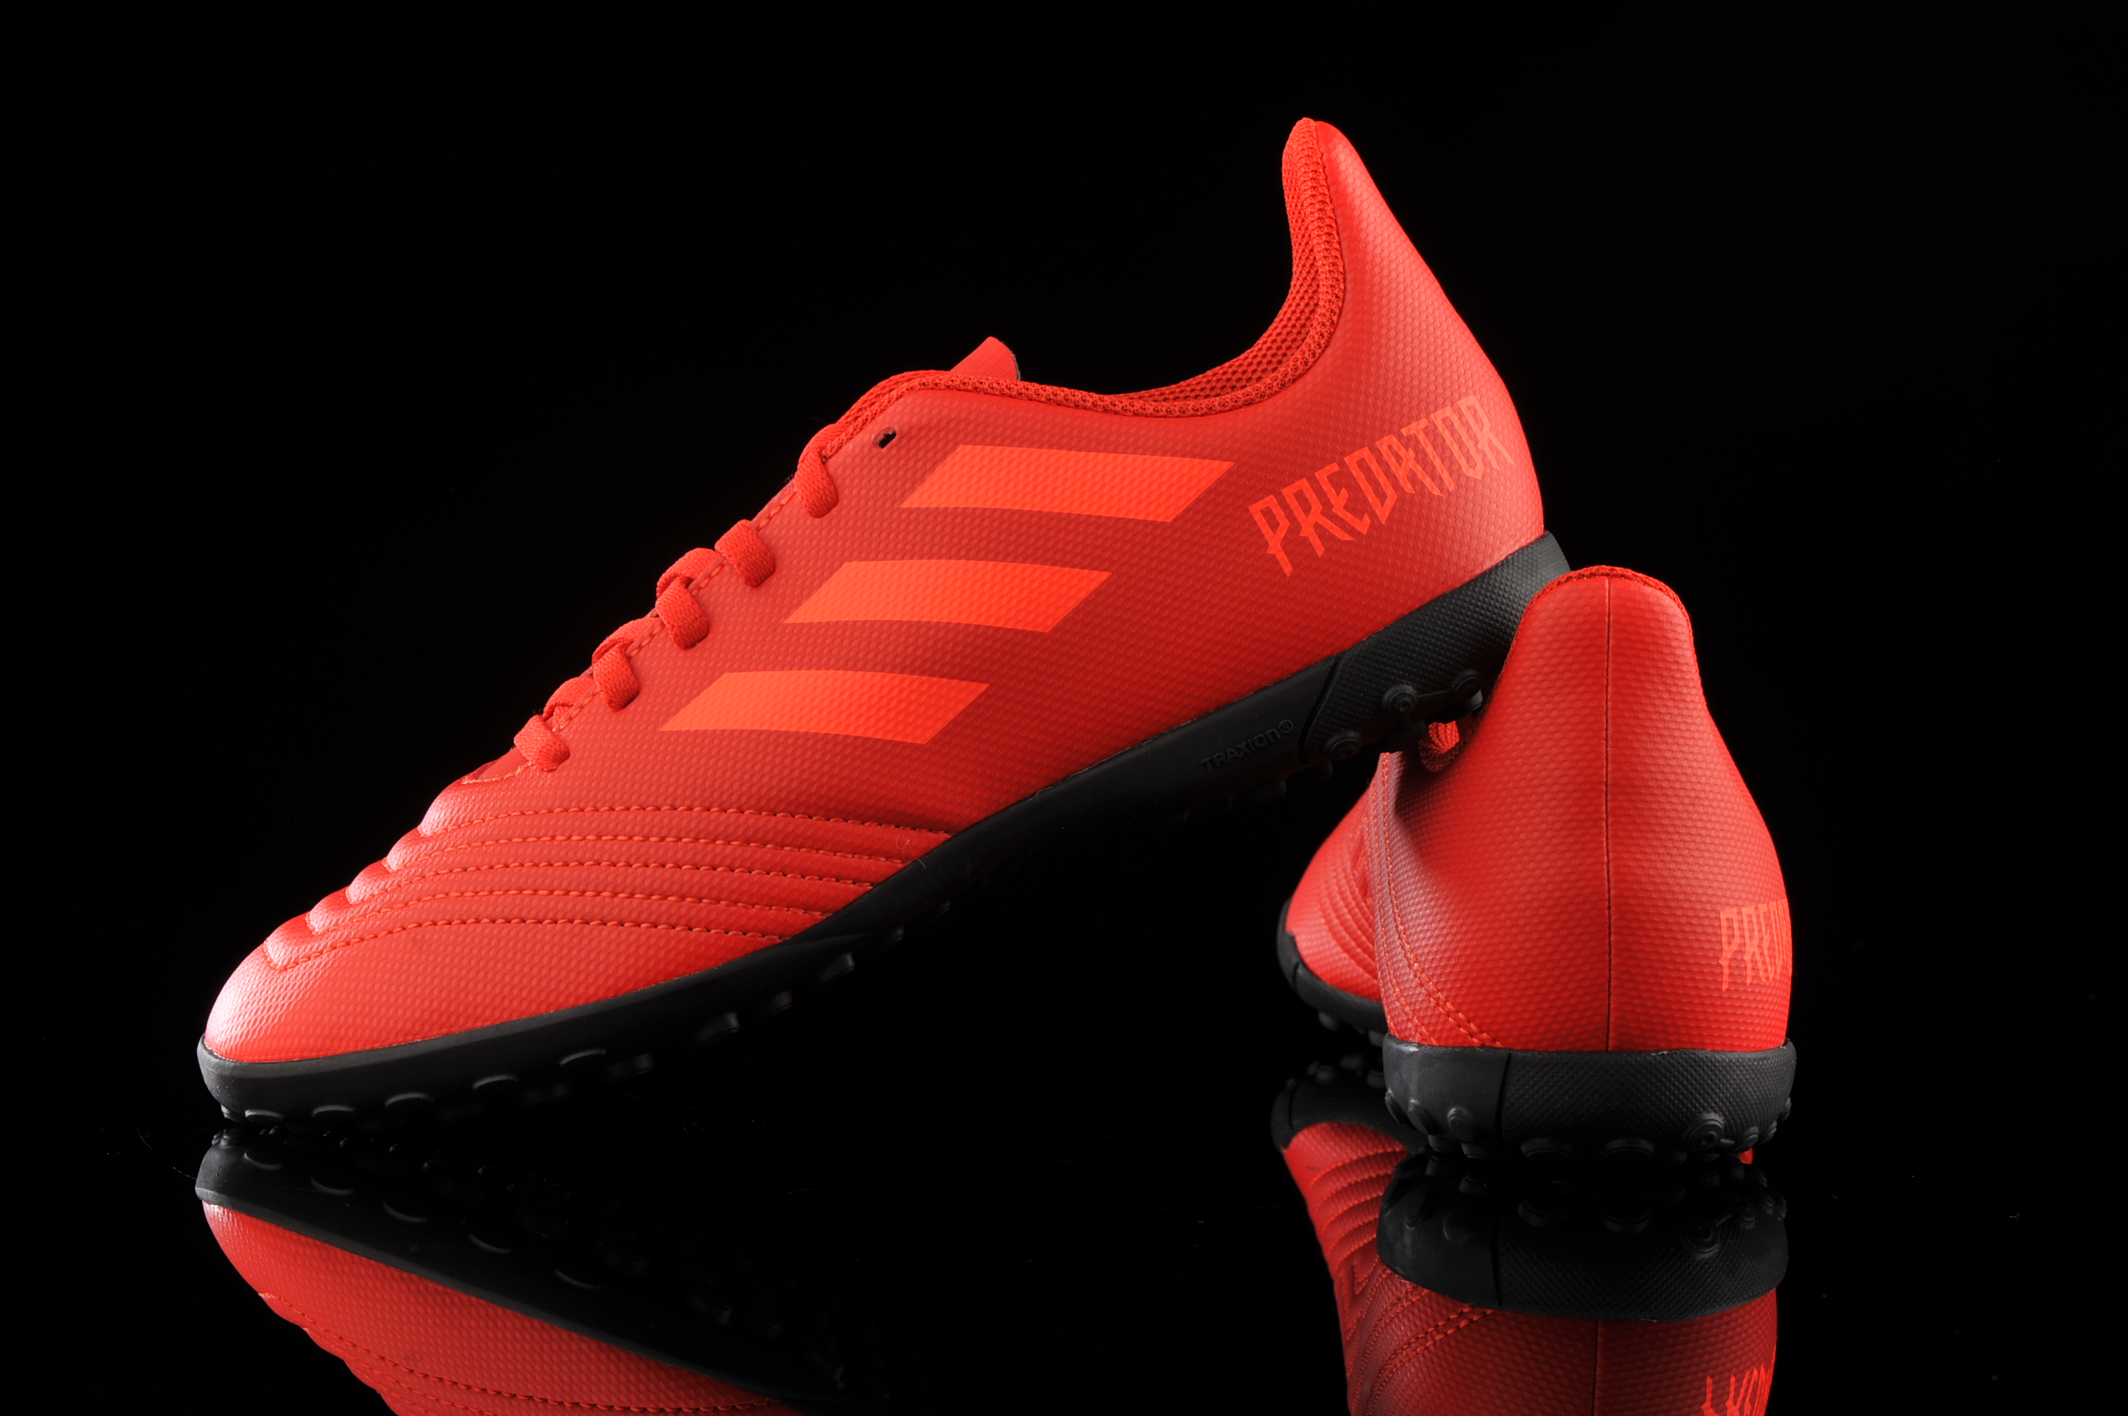 Salida hacia capa abolir  adidas Predator 19.4 TF Junior CM8557 | R-GOL.com - Football boots &  equipment